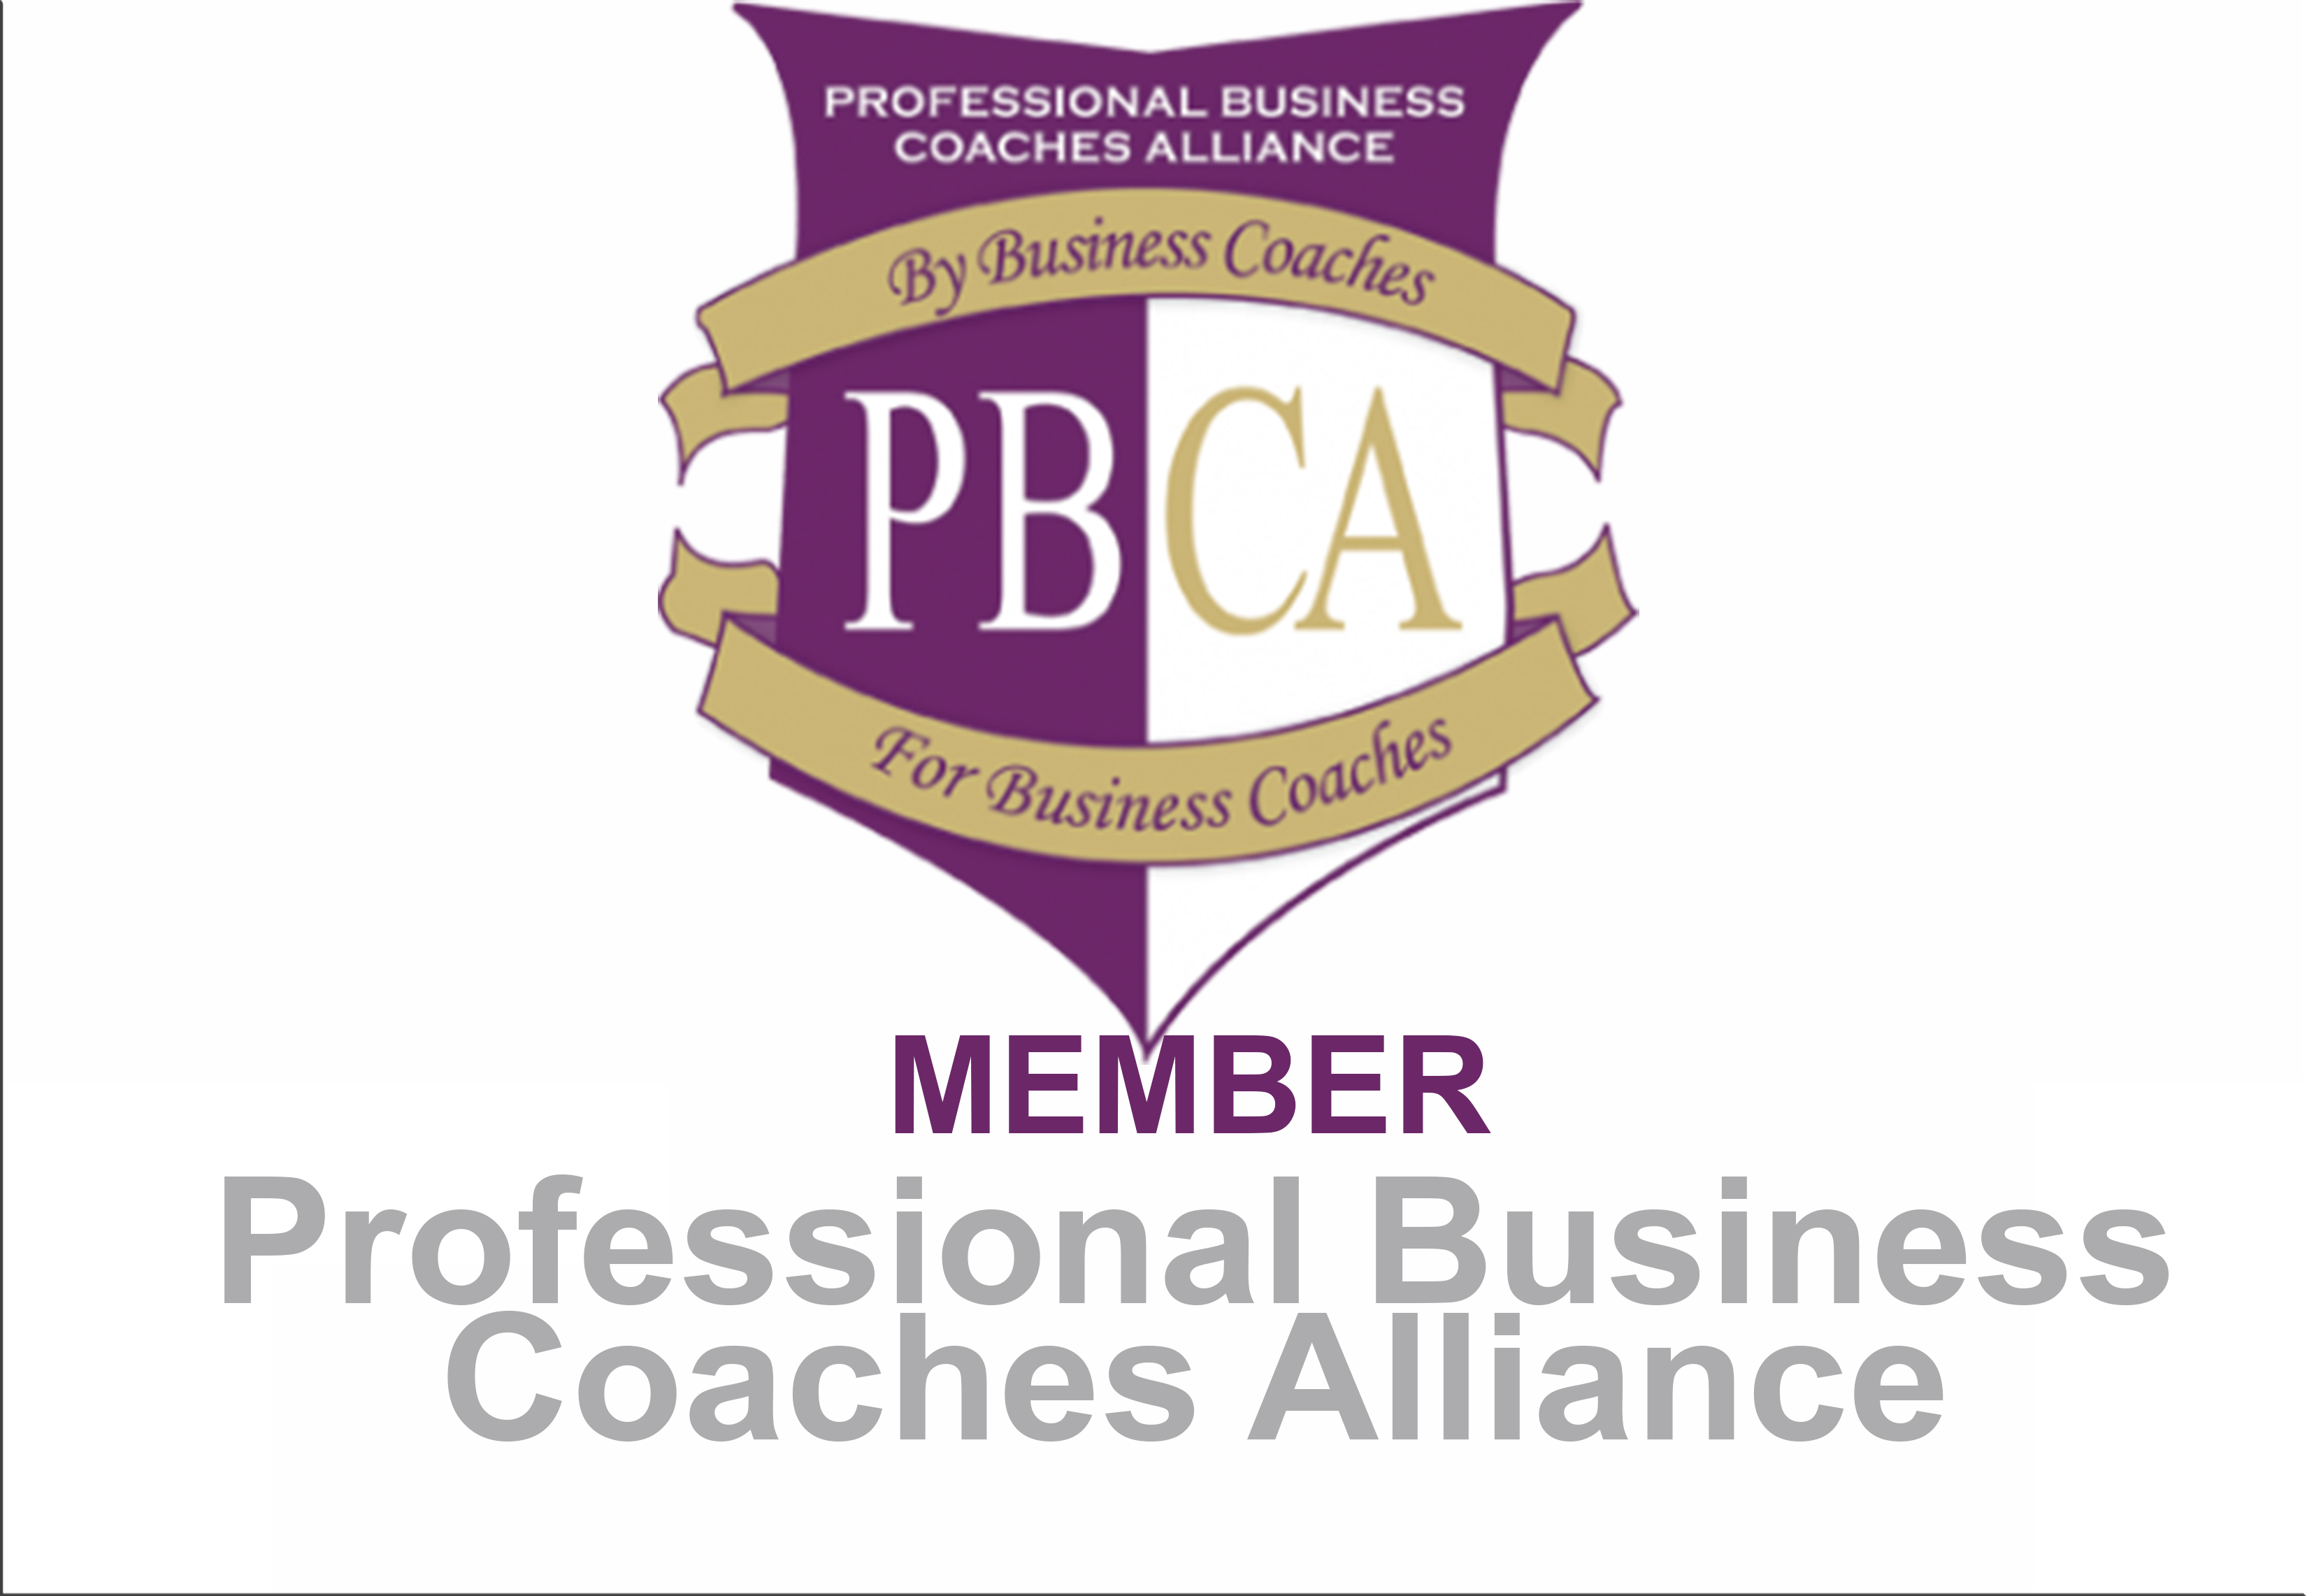 Member of Professional Business Coaches Alliance